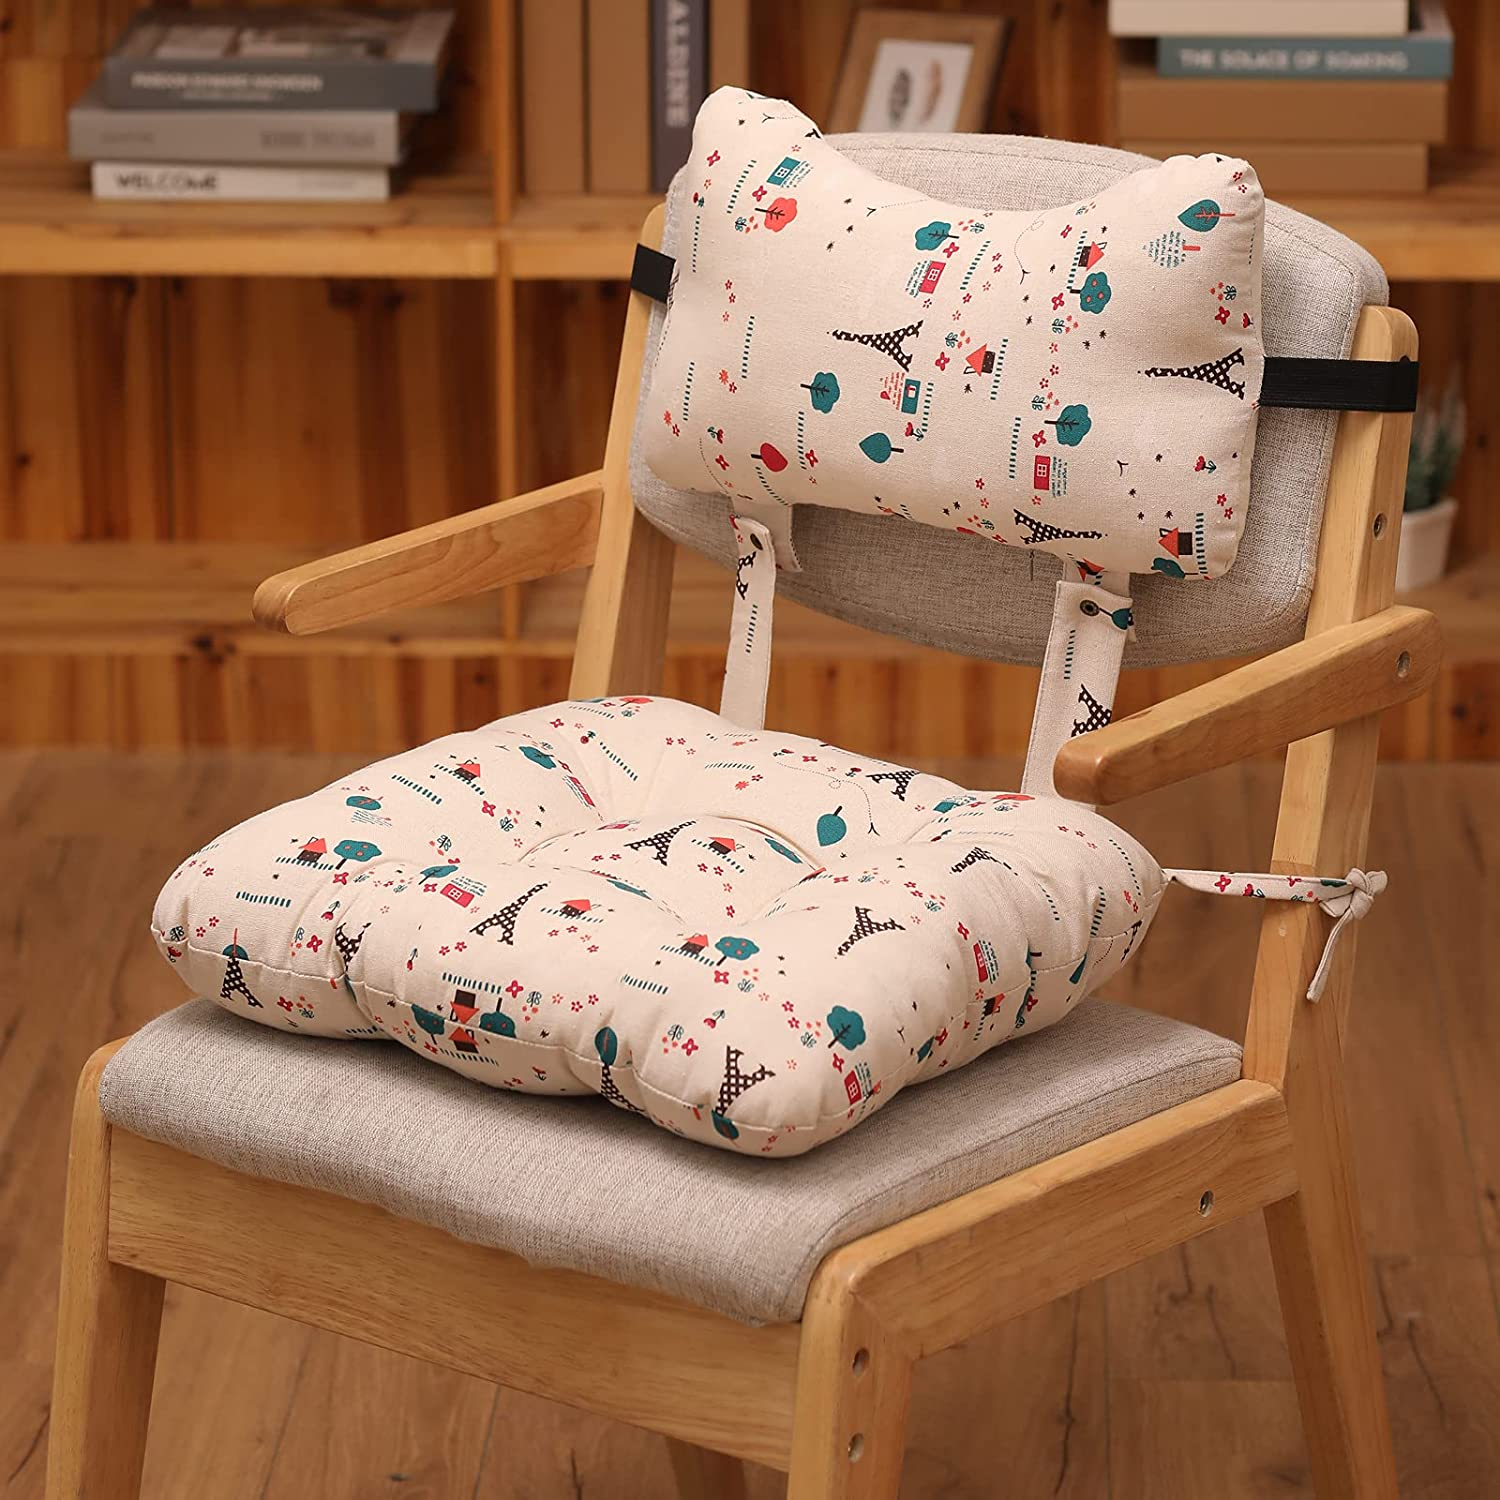 ROFIELTY Chair National uniform free shipping Cushions Seat Cushion 40% OFF Cheap Sale Kitche Office